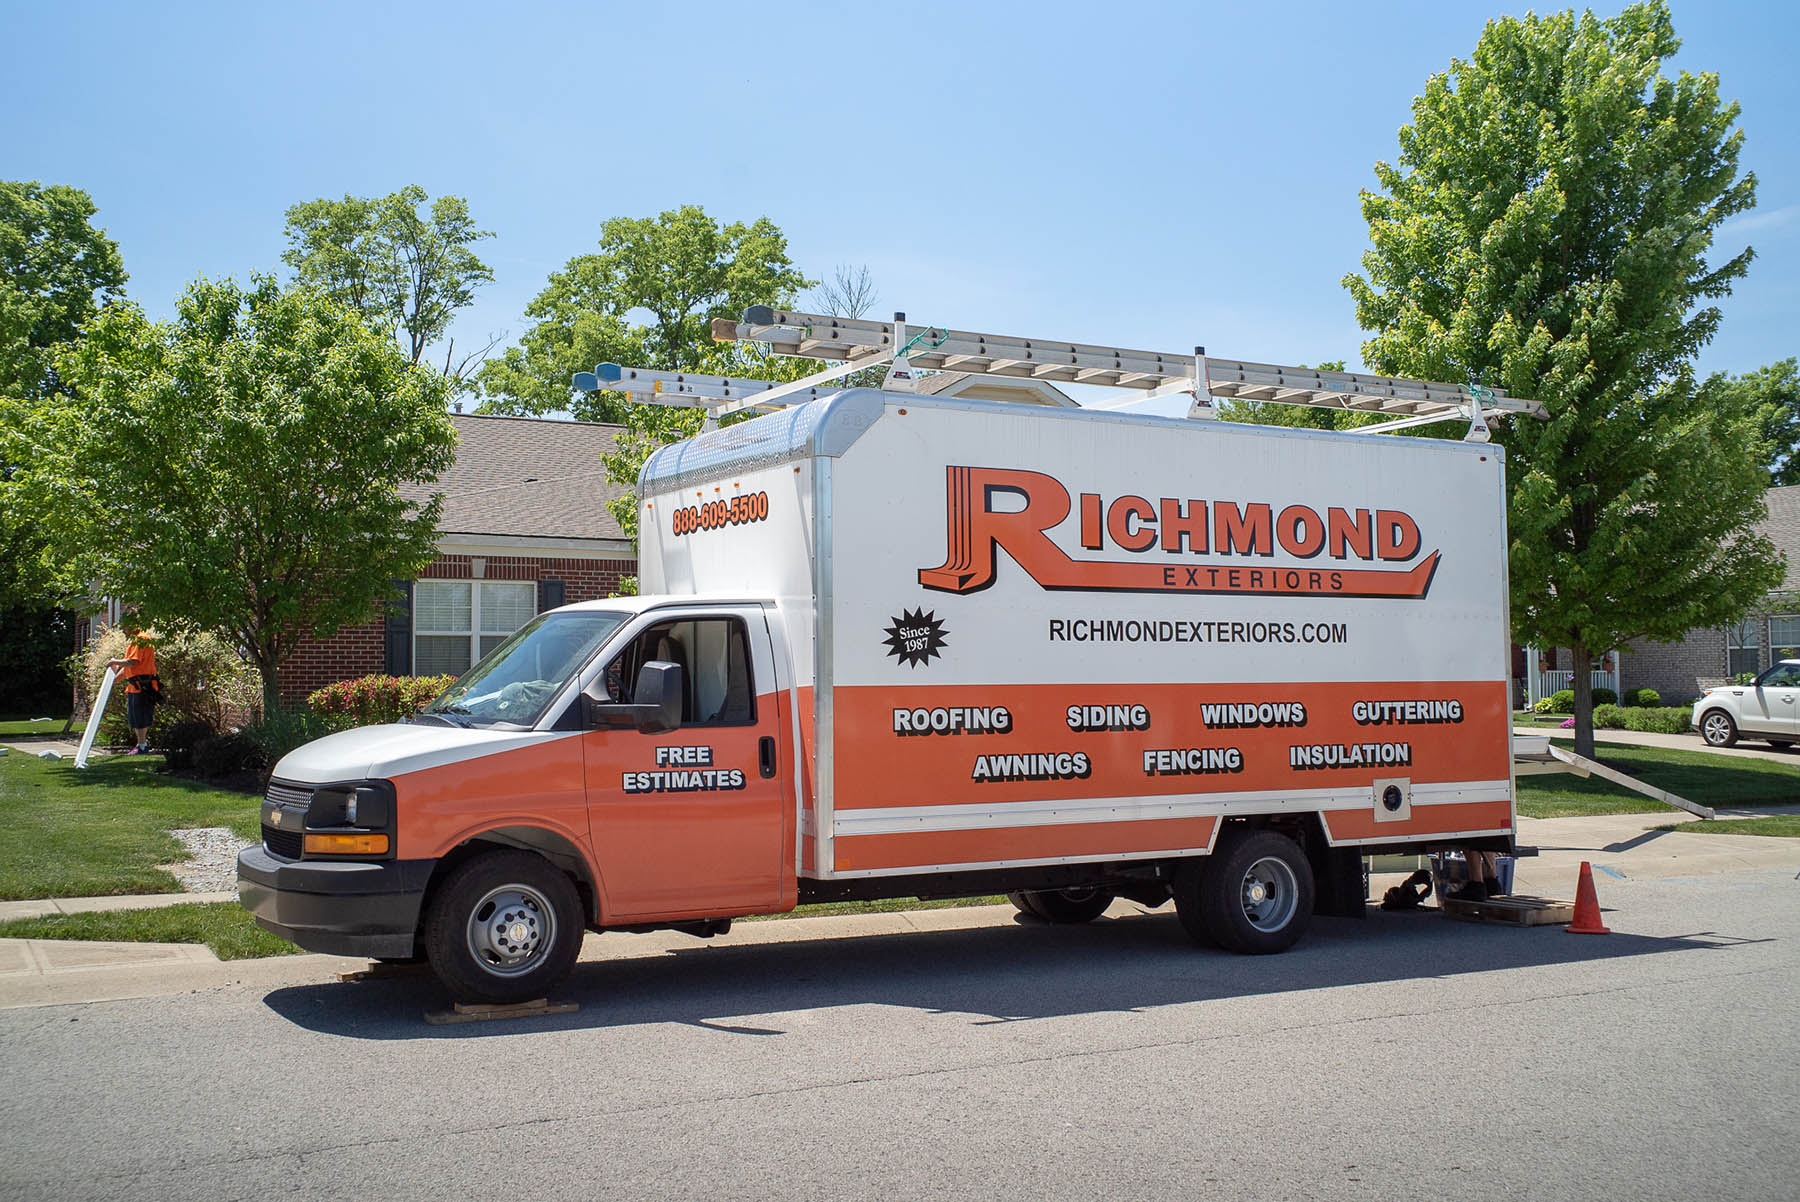 Richmond Exteriors truck for exterior remodeling